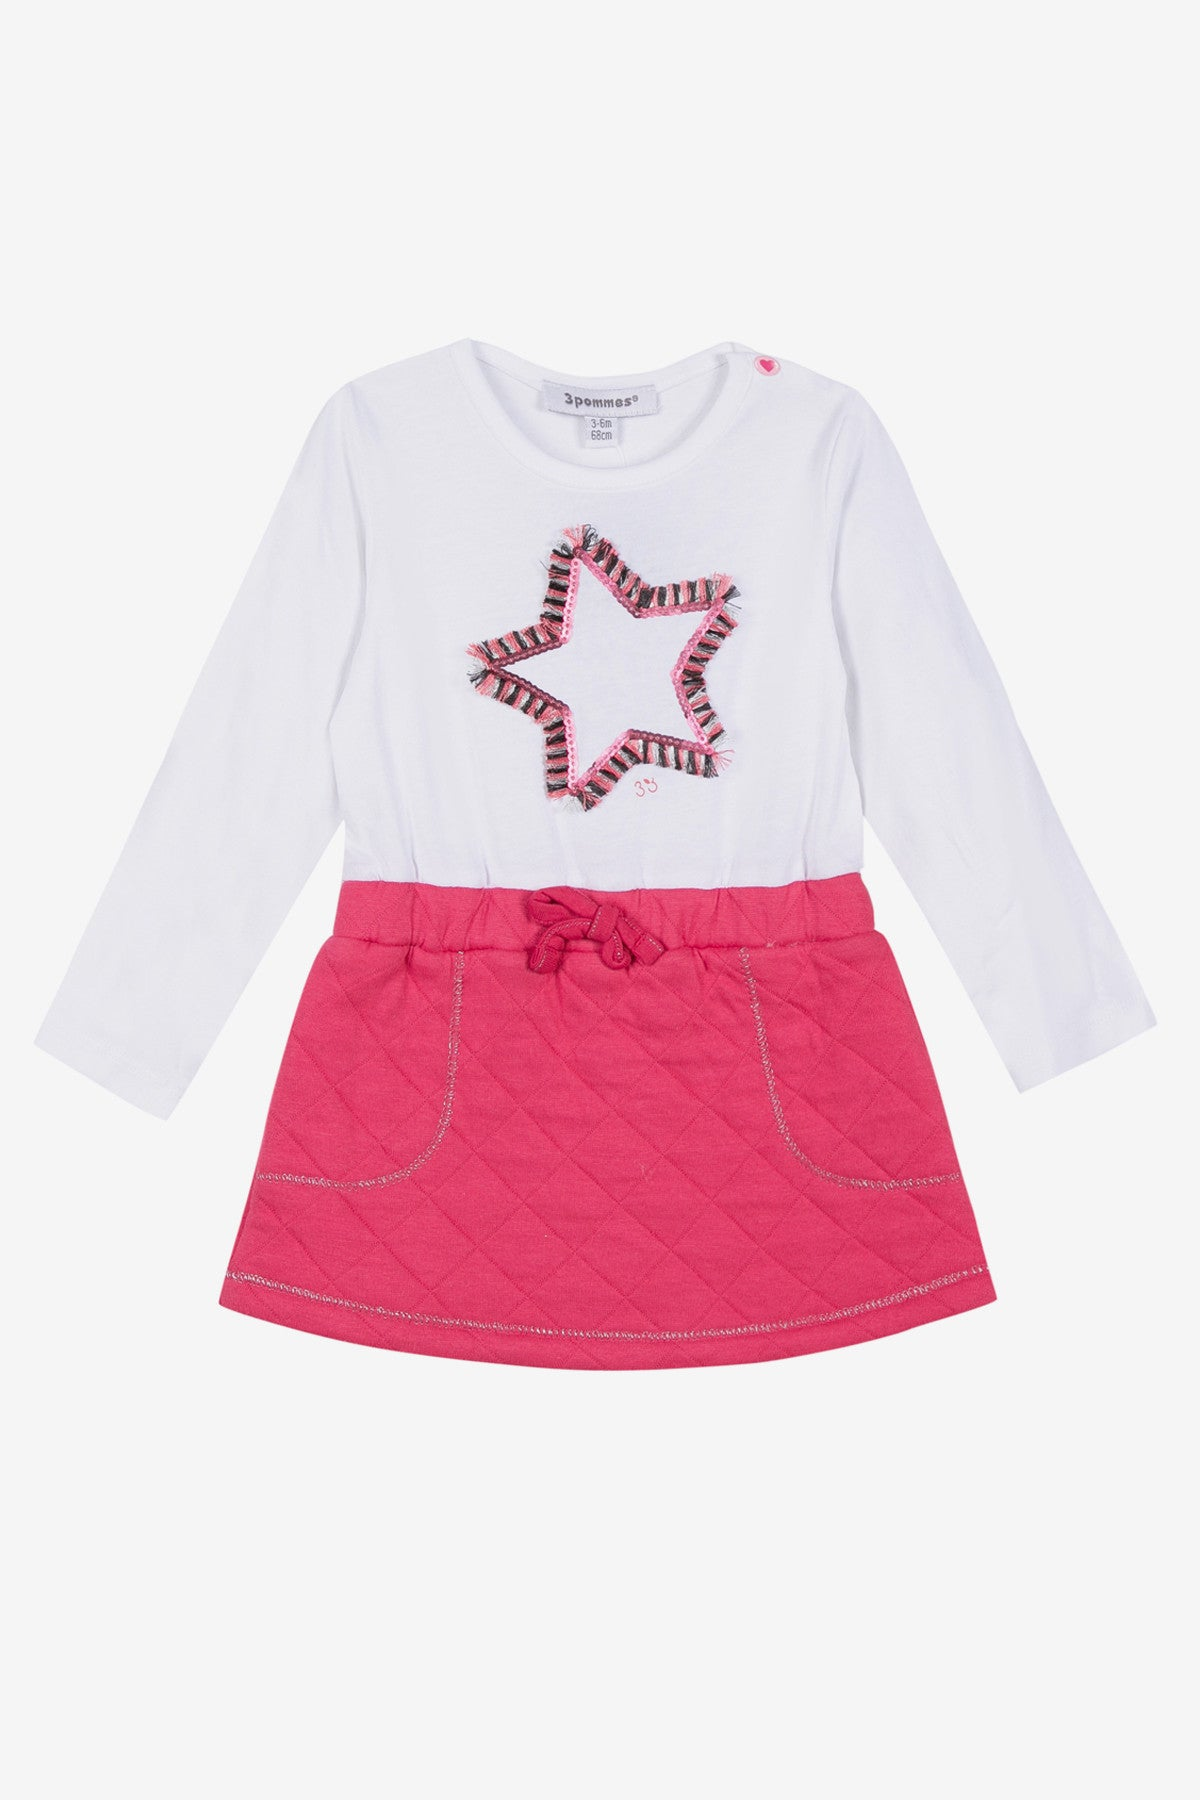 3pommes Star Girls Dress